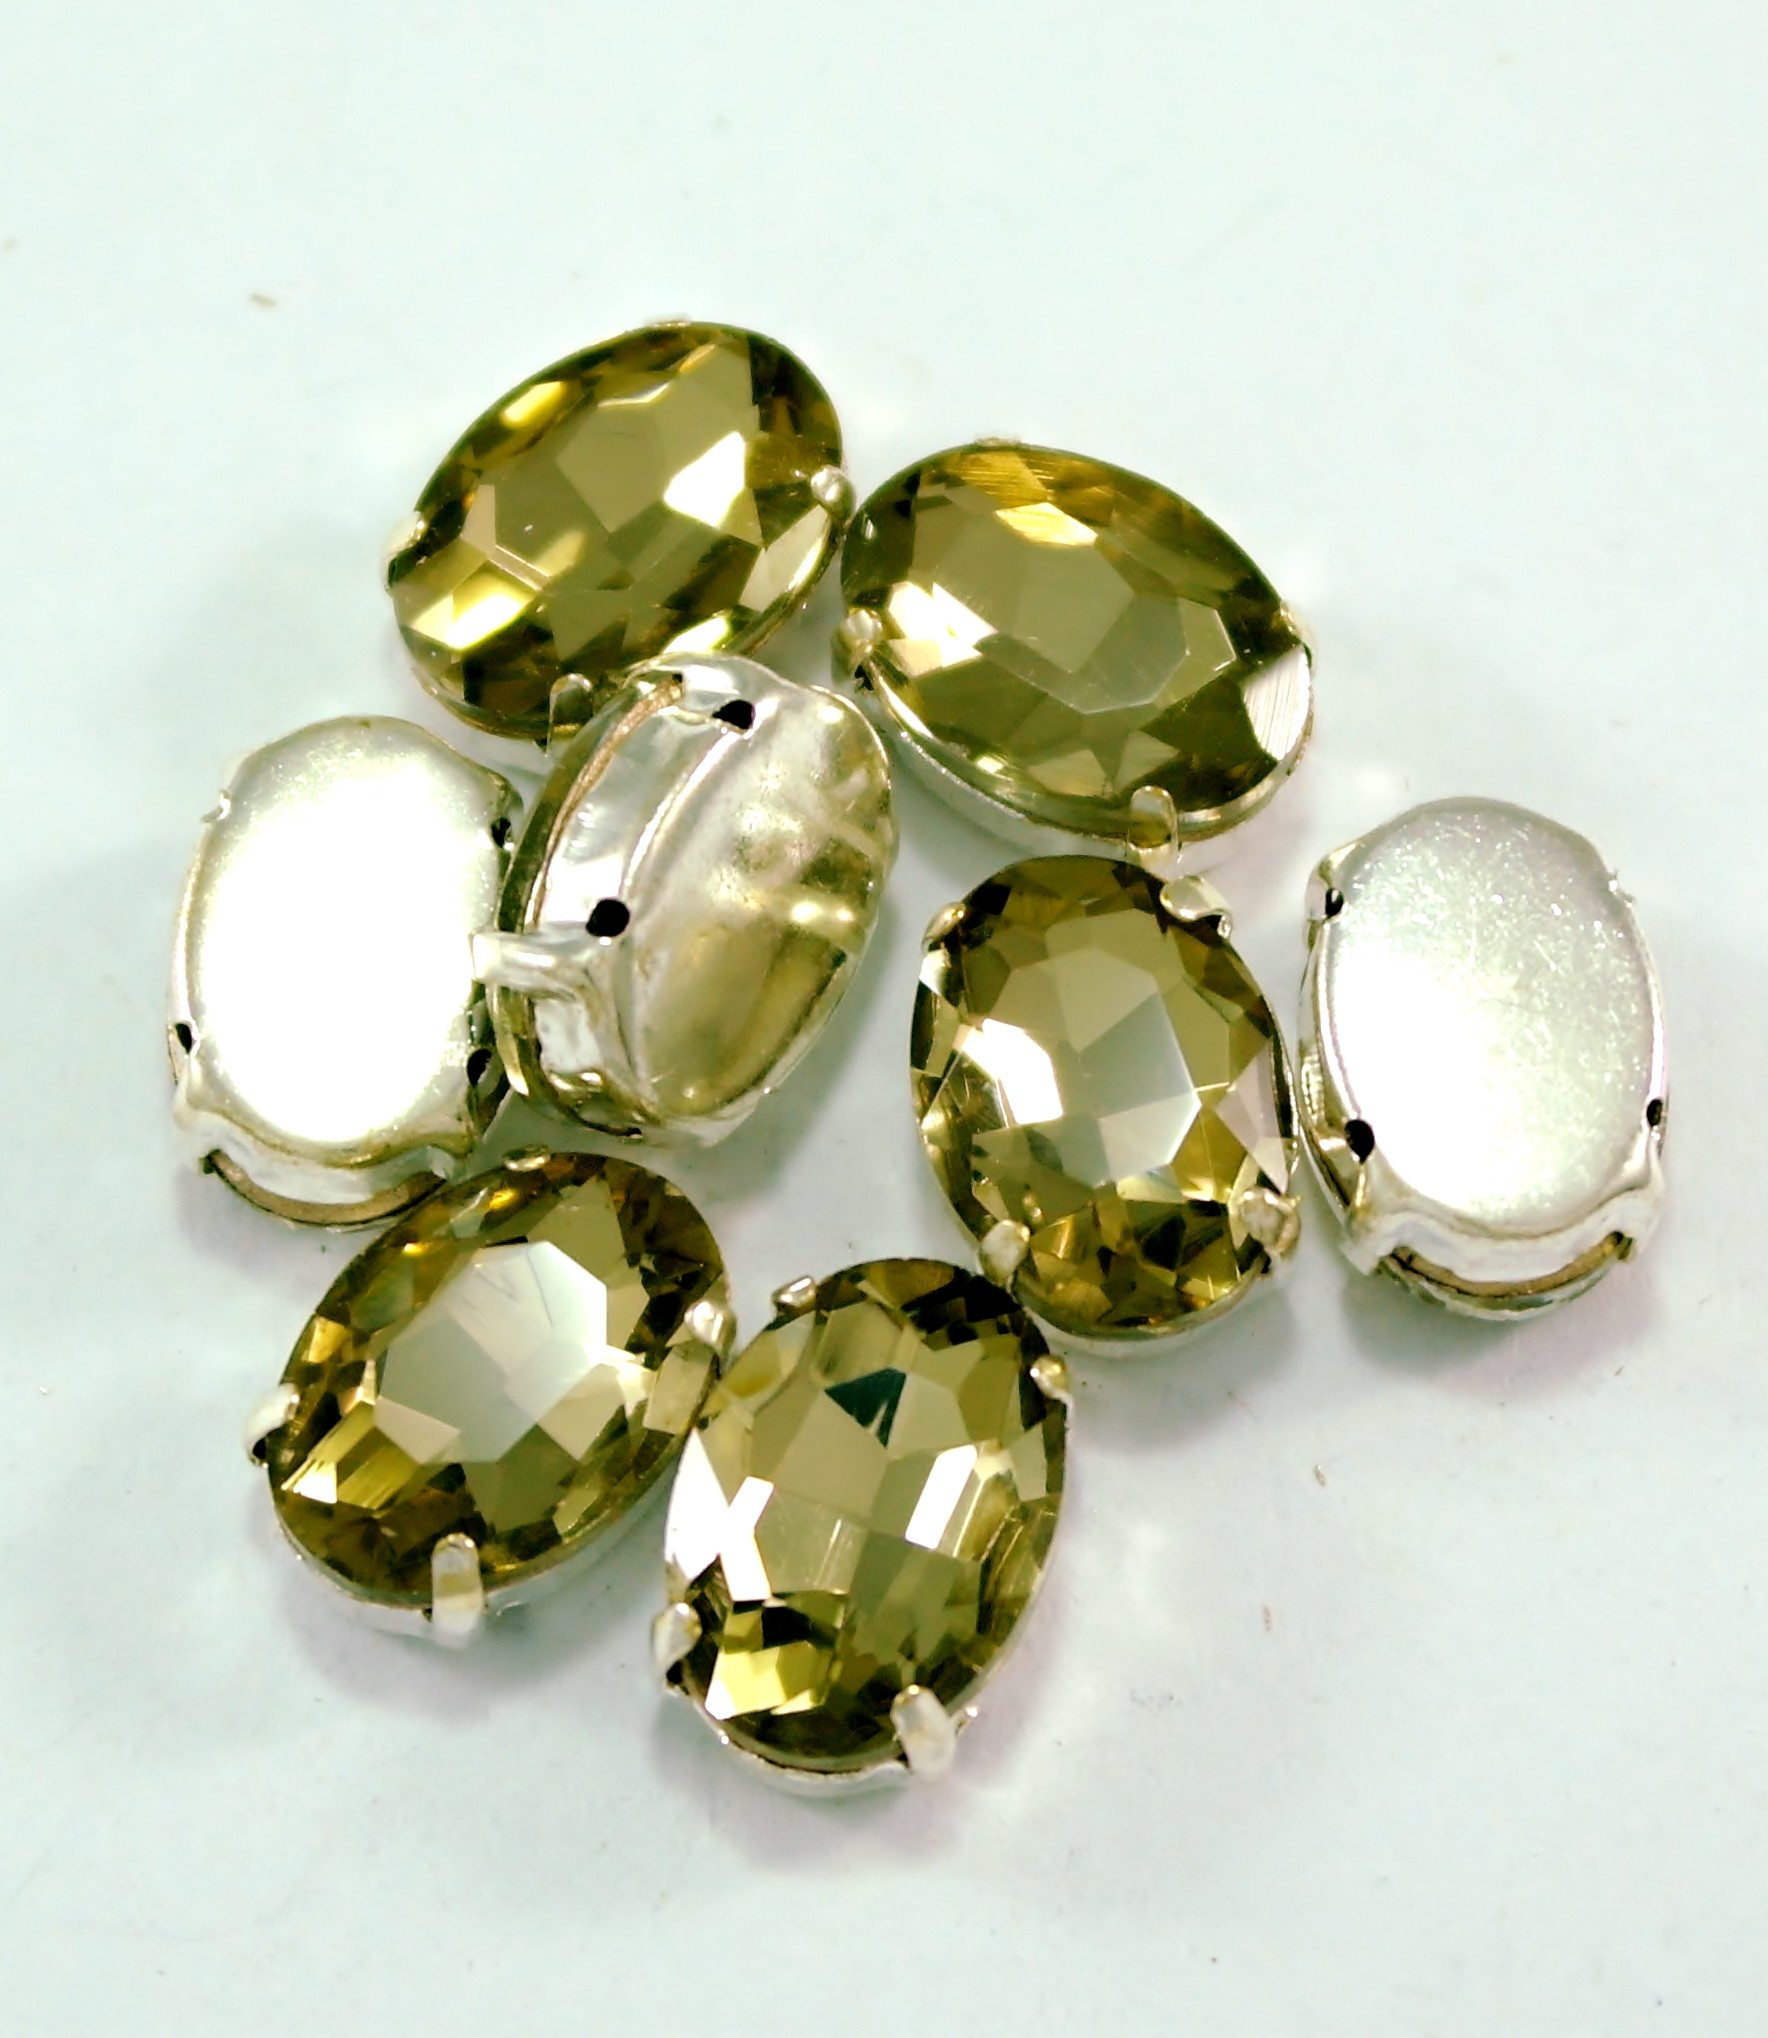 GLASS BEADS - LIGHT COLARADO TOPAZ OVAL (O10)